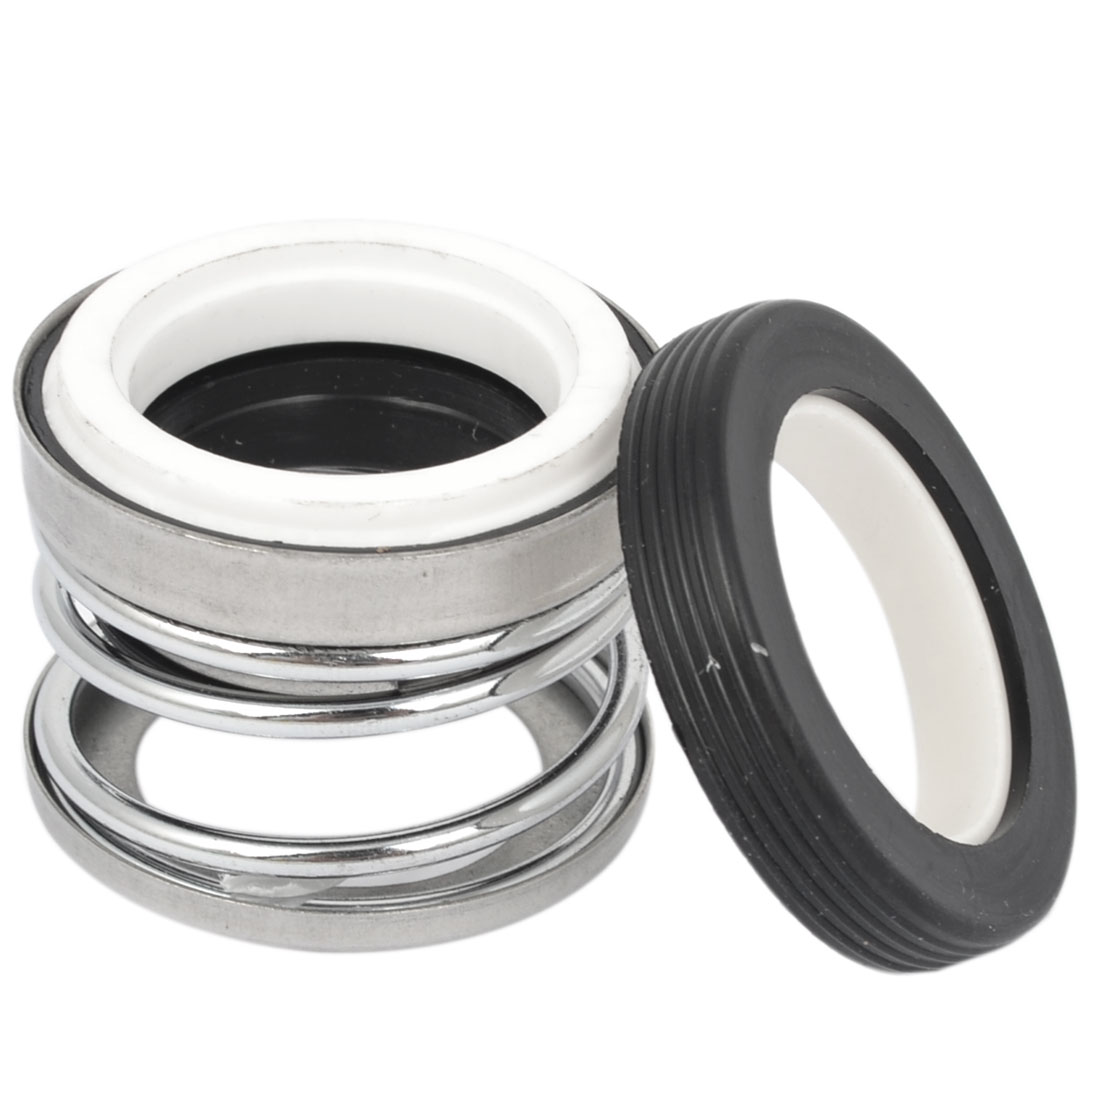 25mm Inner Dia Rubber Coiled Spring Bellow Mechanical Seal for Water Pump